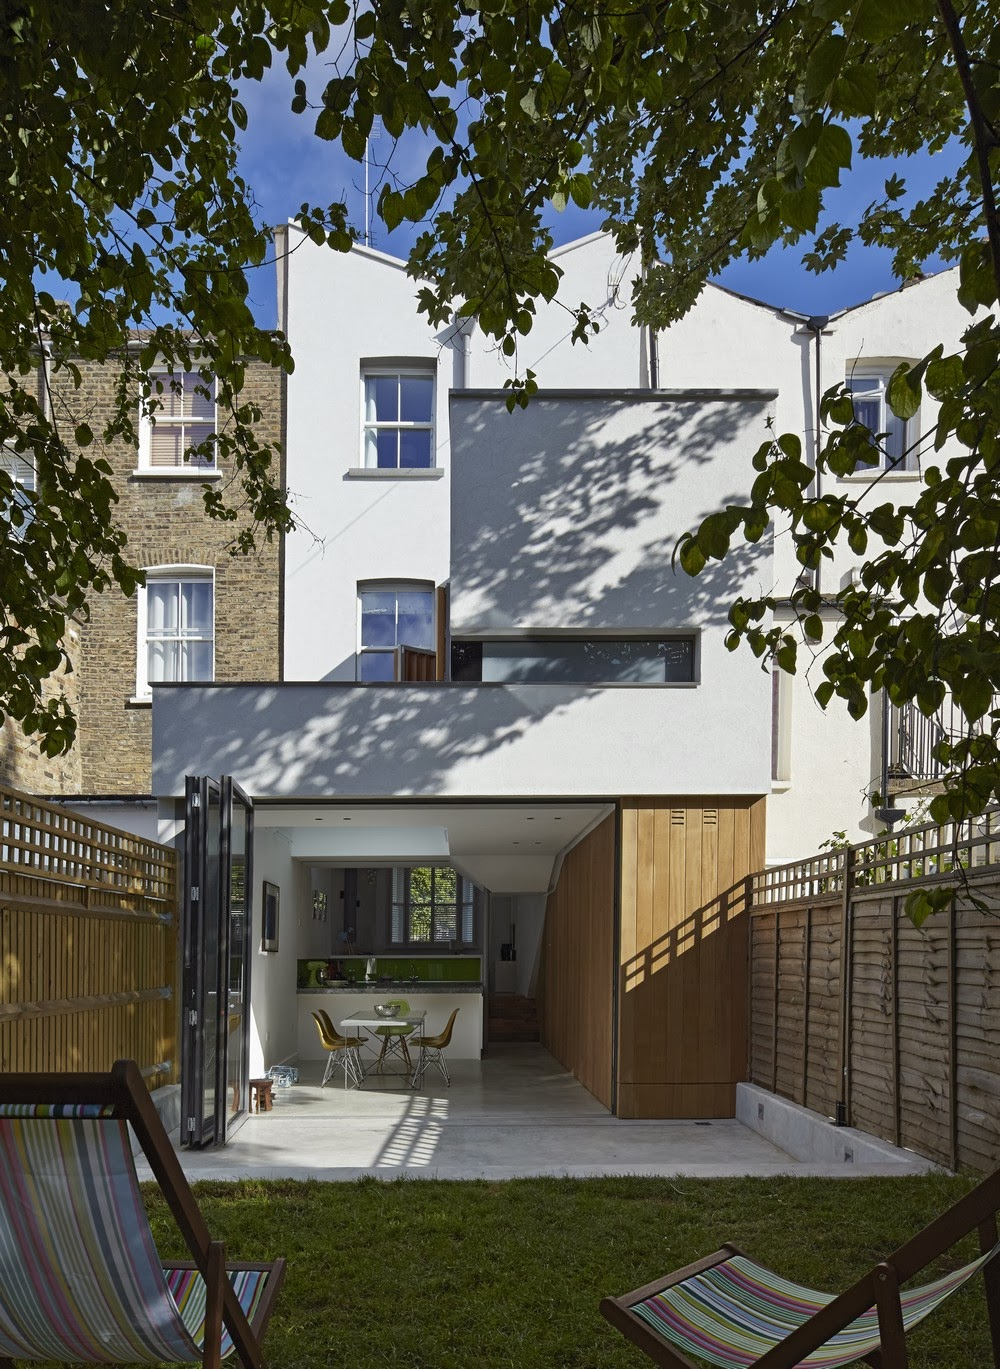 http://freshome.com/2014/01/08/clever-family-home-makeover-london-neil-dusheiko-architects/